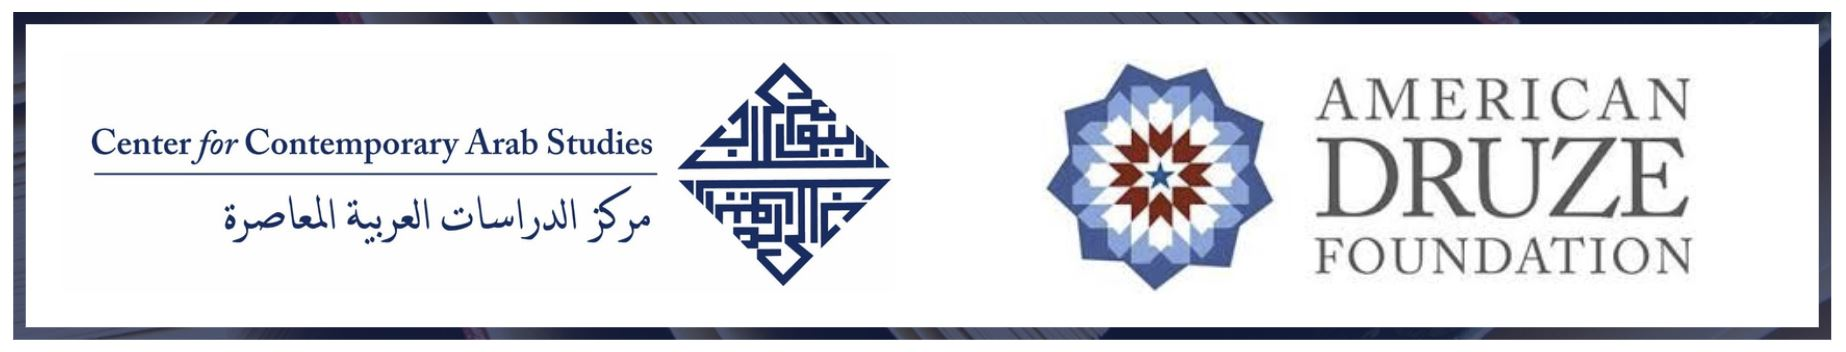 The logos for the center for contemporary arab studies and hte American Druze Foundation